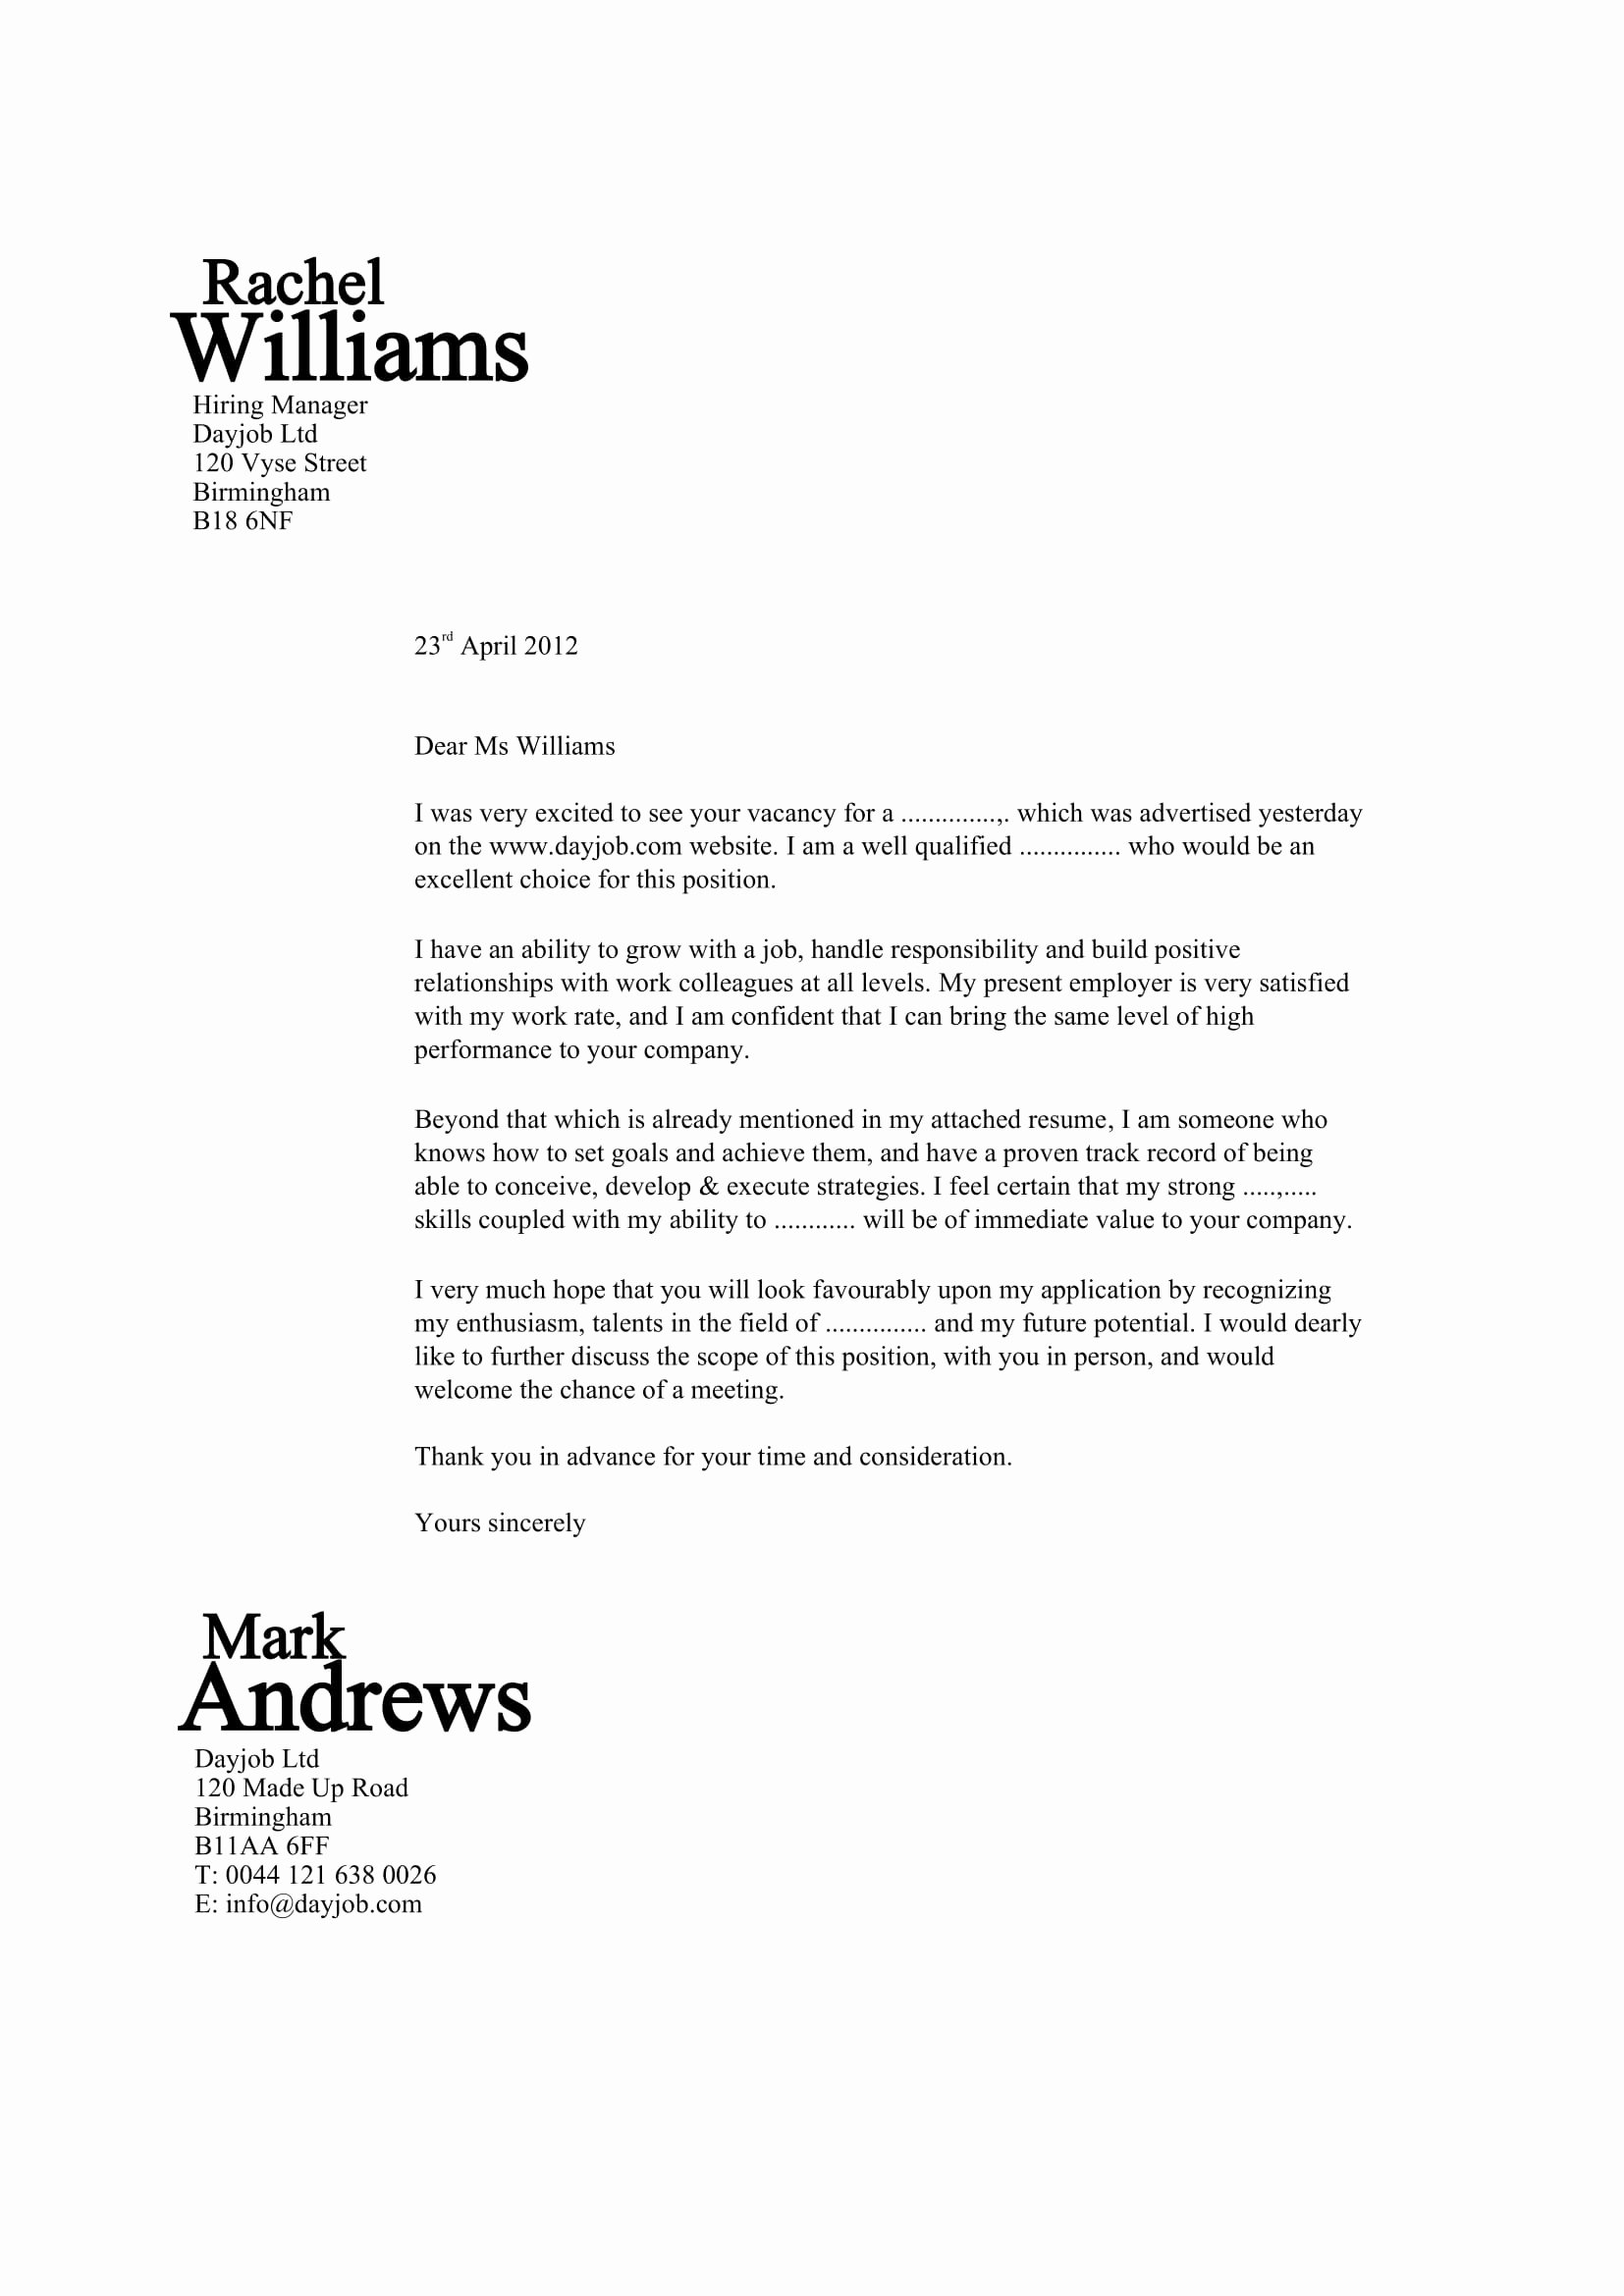 Job Application Writing Sample Luxury 32 Best Sample Cover Letter Examples for Job Applicants